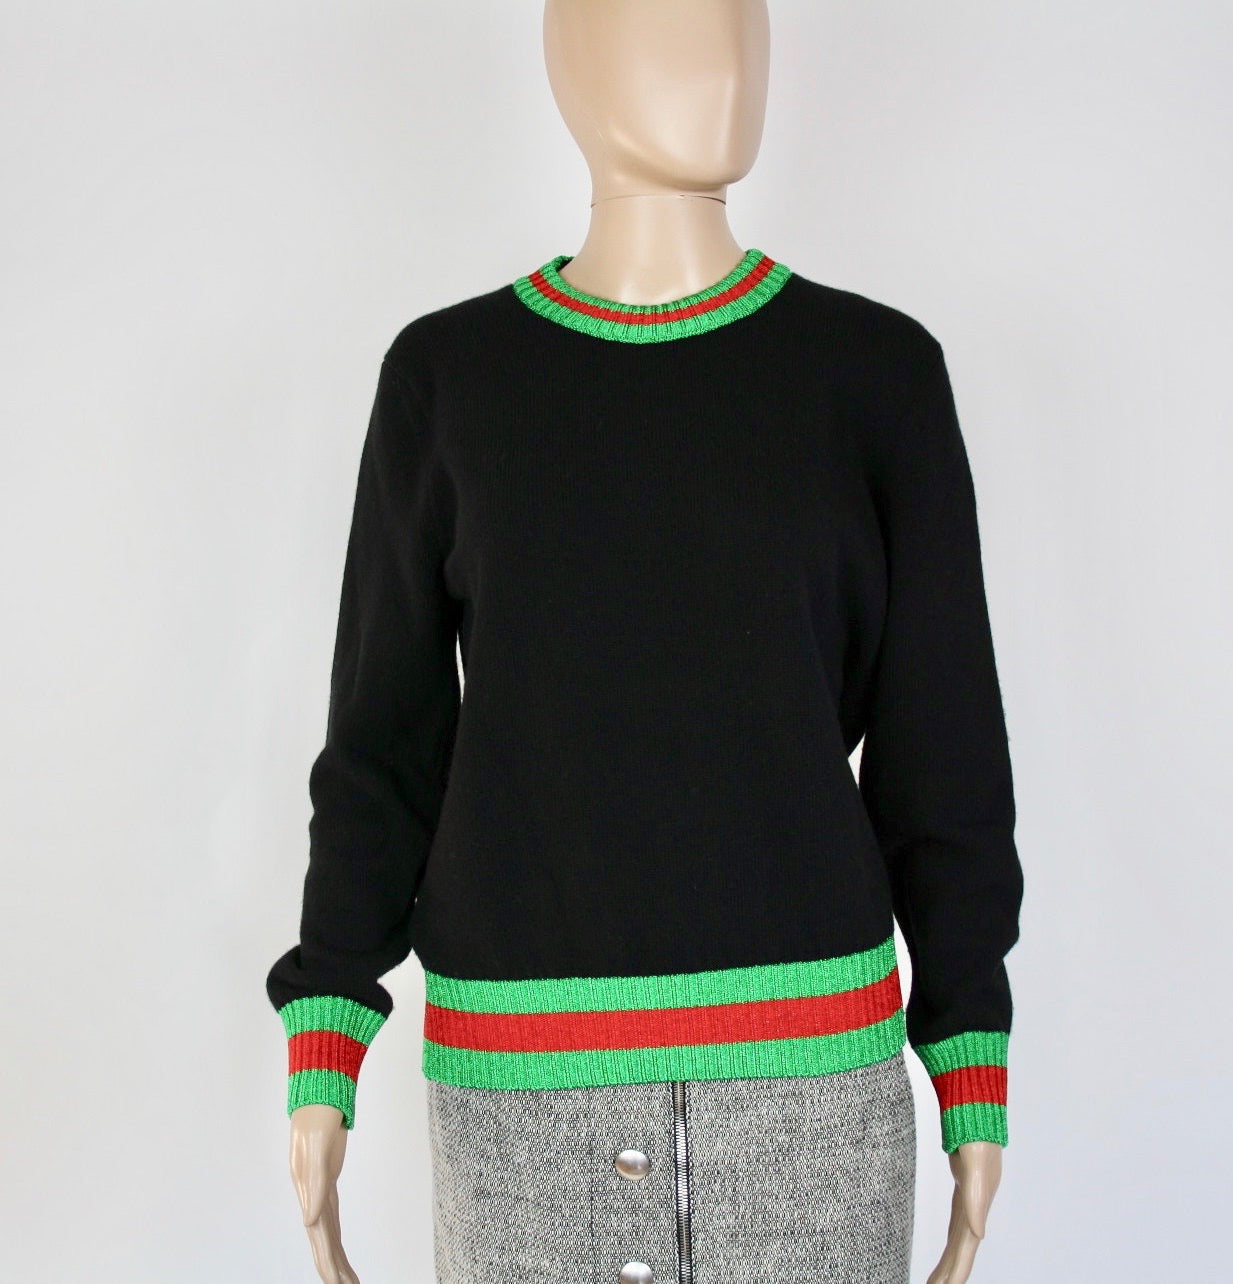 Gucci Black sweater - Iconics Preloved Luxury